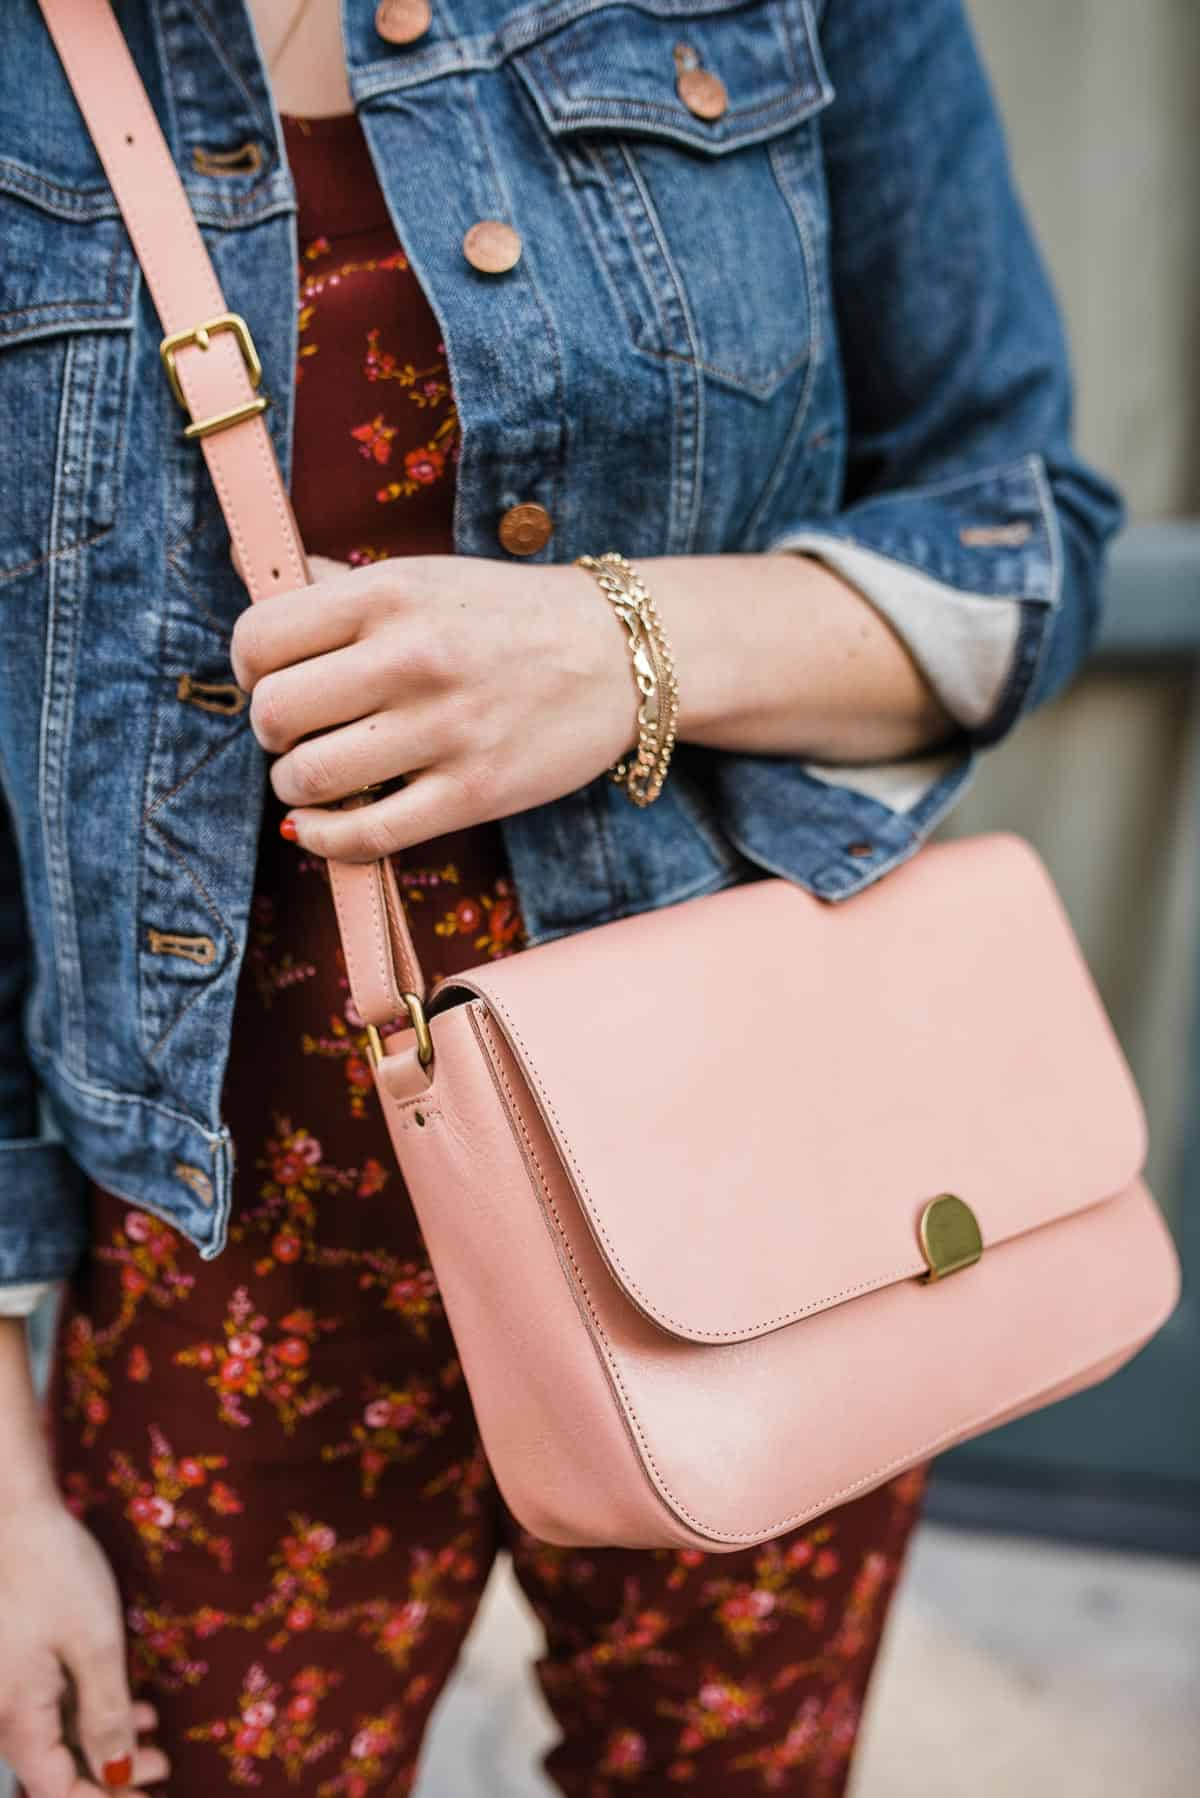 BLUSH HANDBAG AND DENIM JACKET LOOK